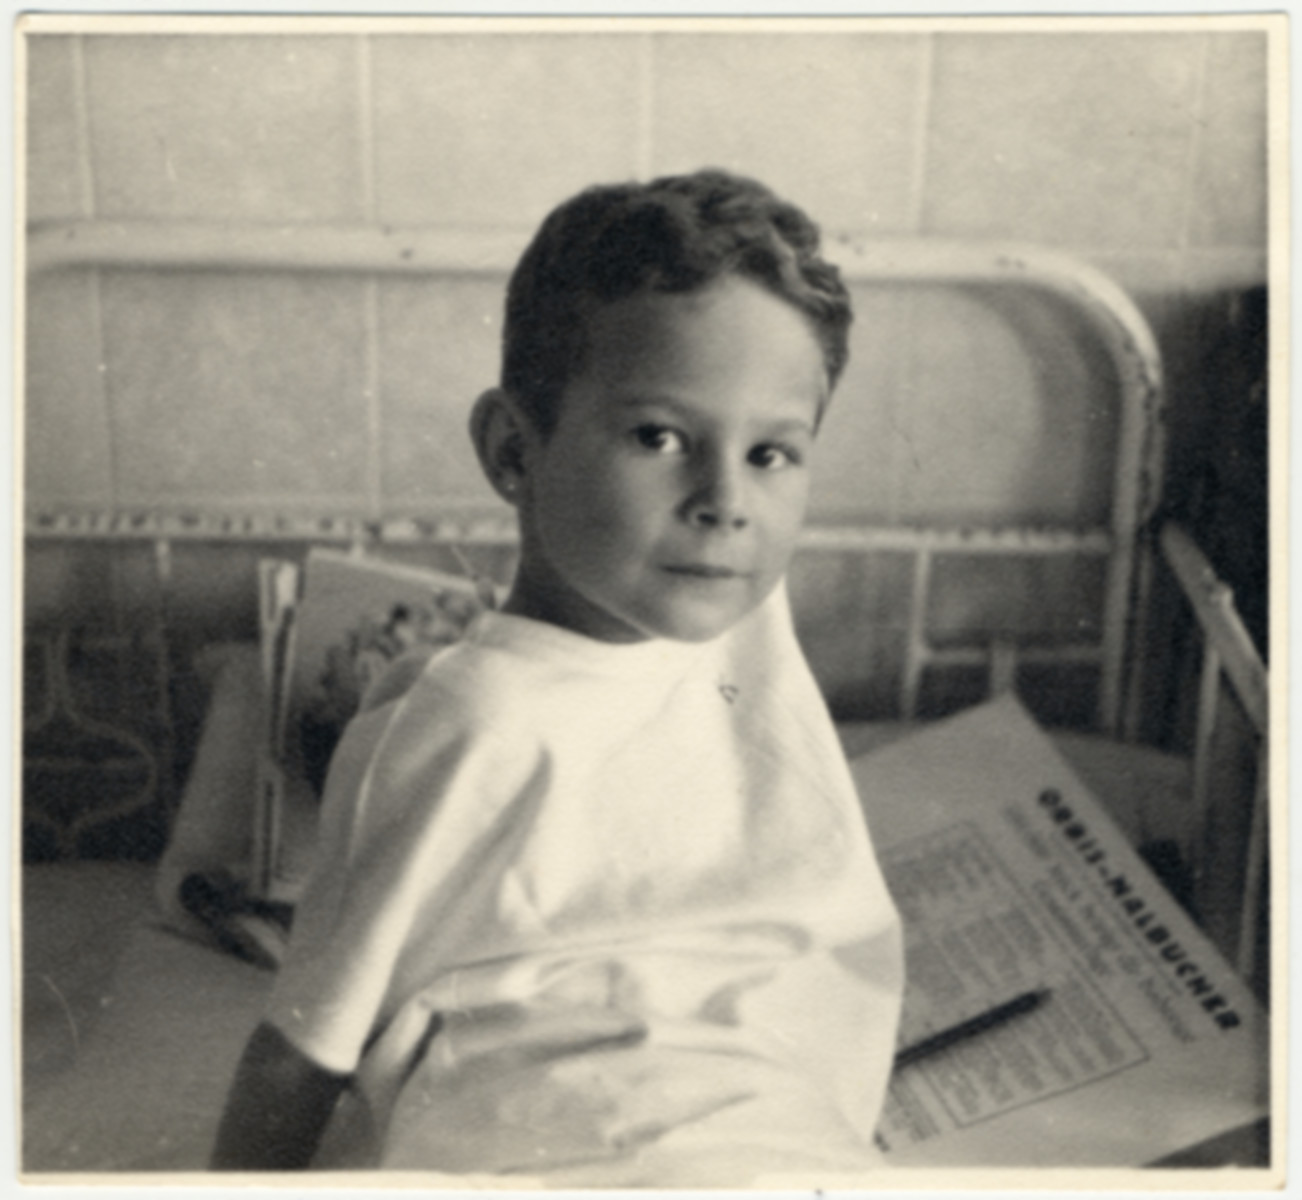 Robert Wagemann, a physically disabled Jehovah's Witness child, sits on his hospital bed.